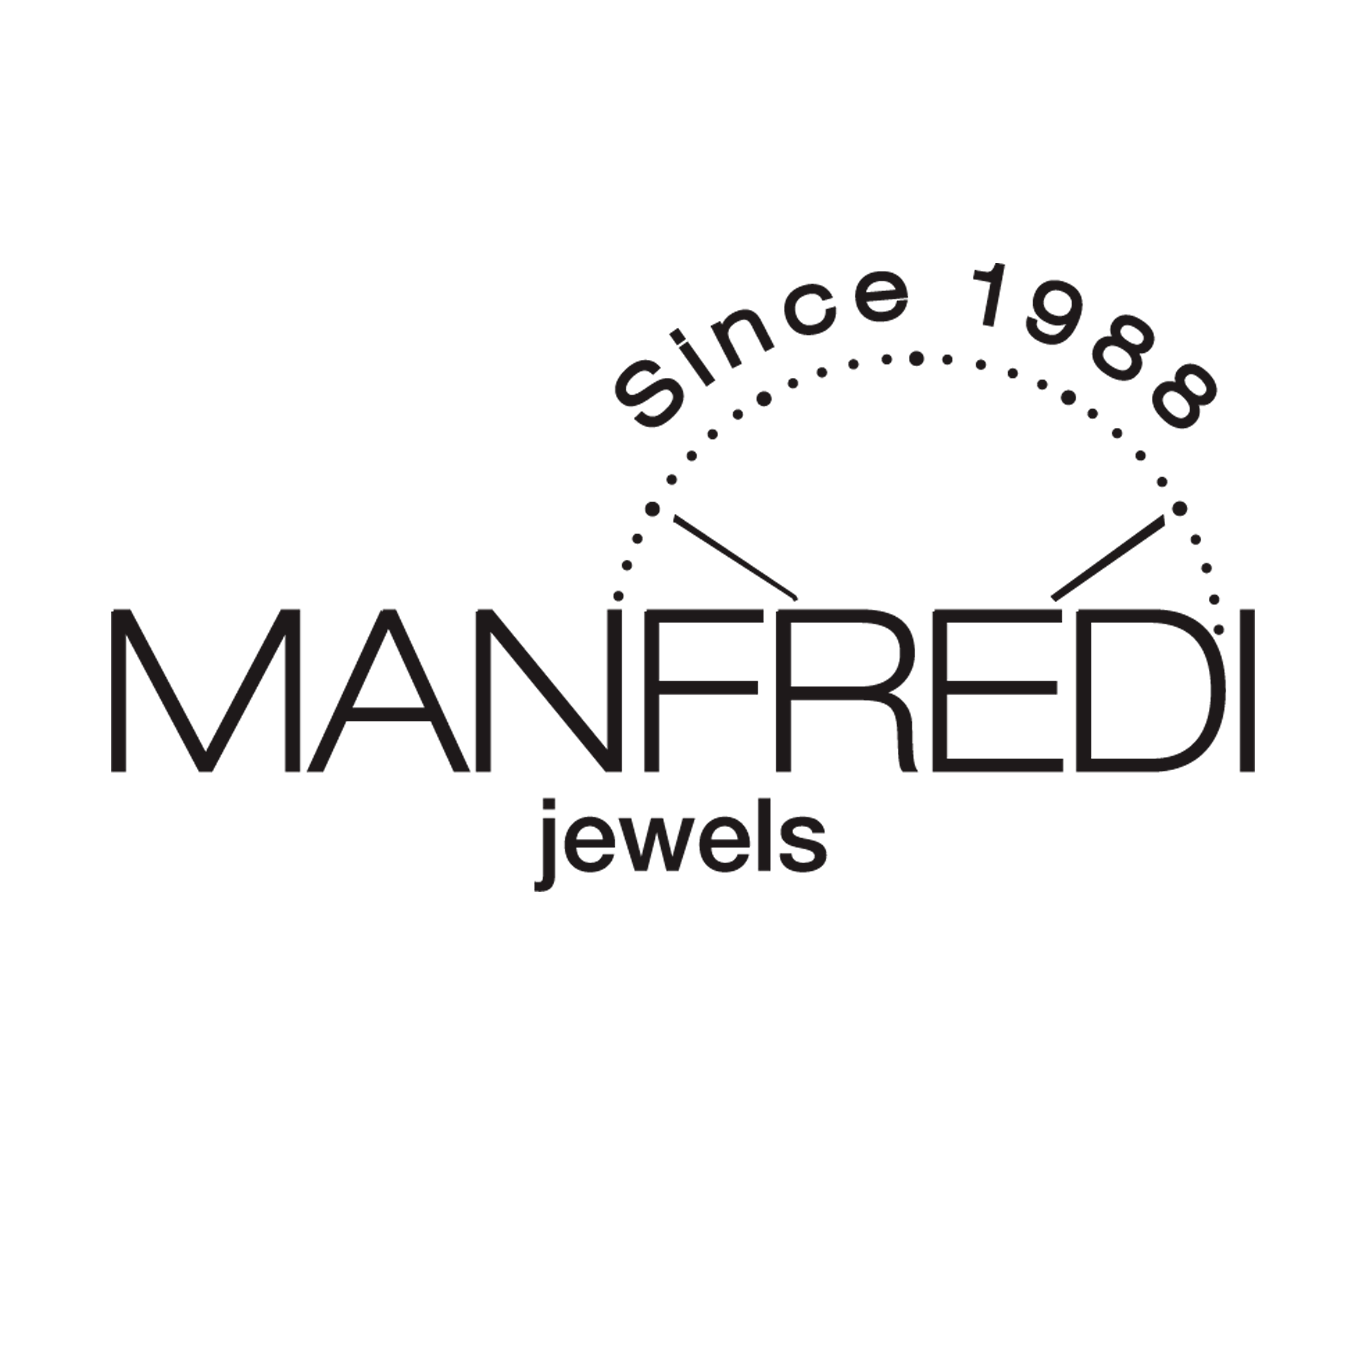 Manfredi New Canaan 72 Elm Street New Canaan Ct Watches